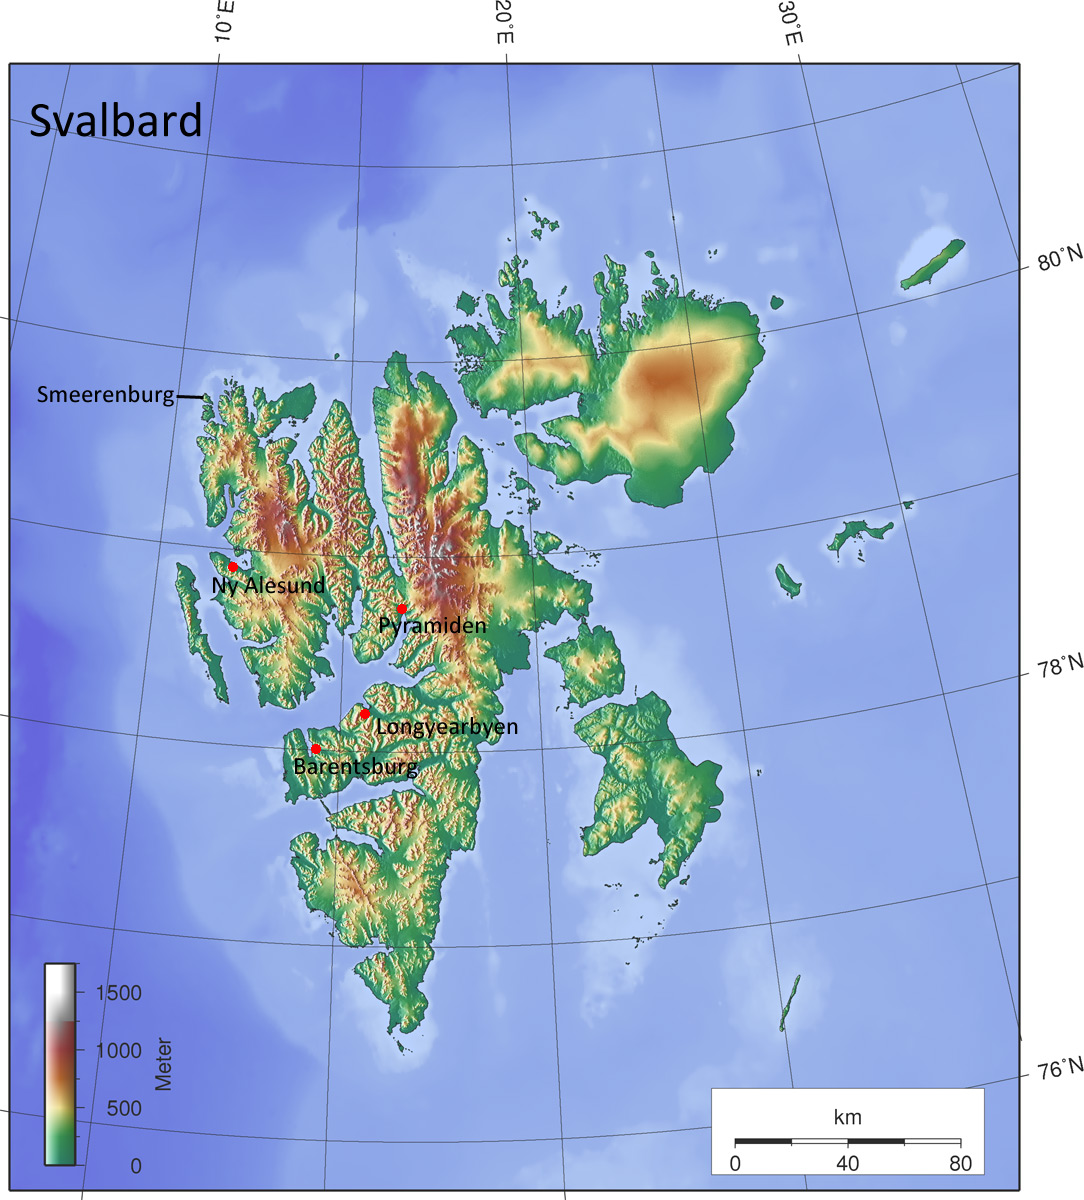 Svalbard Travel A Guide to help plan your Visit to the Arctic